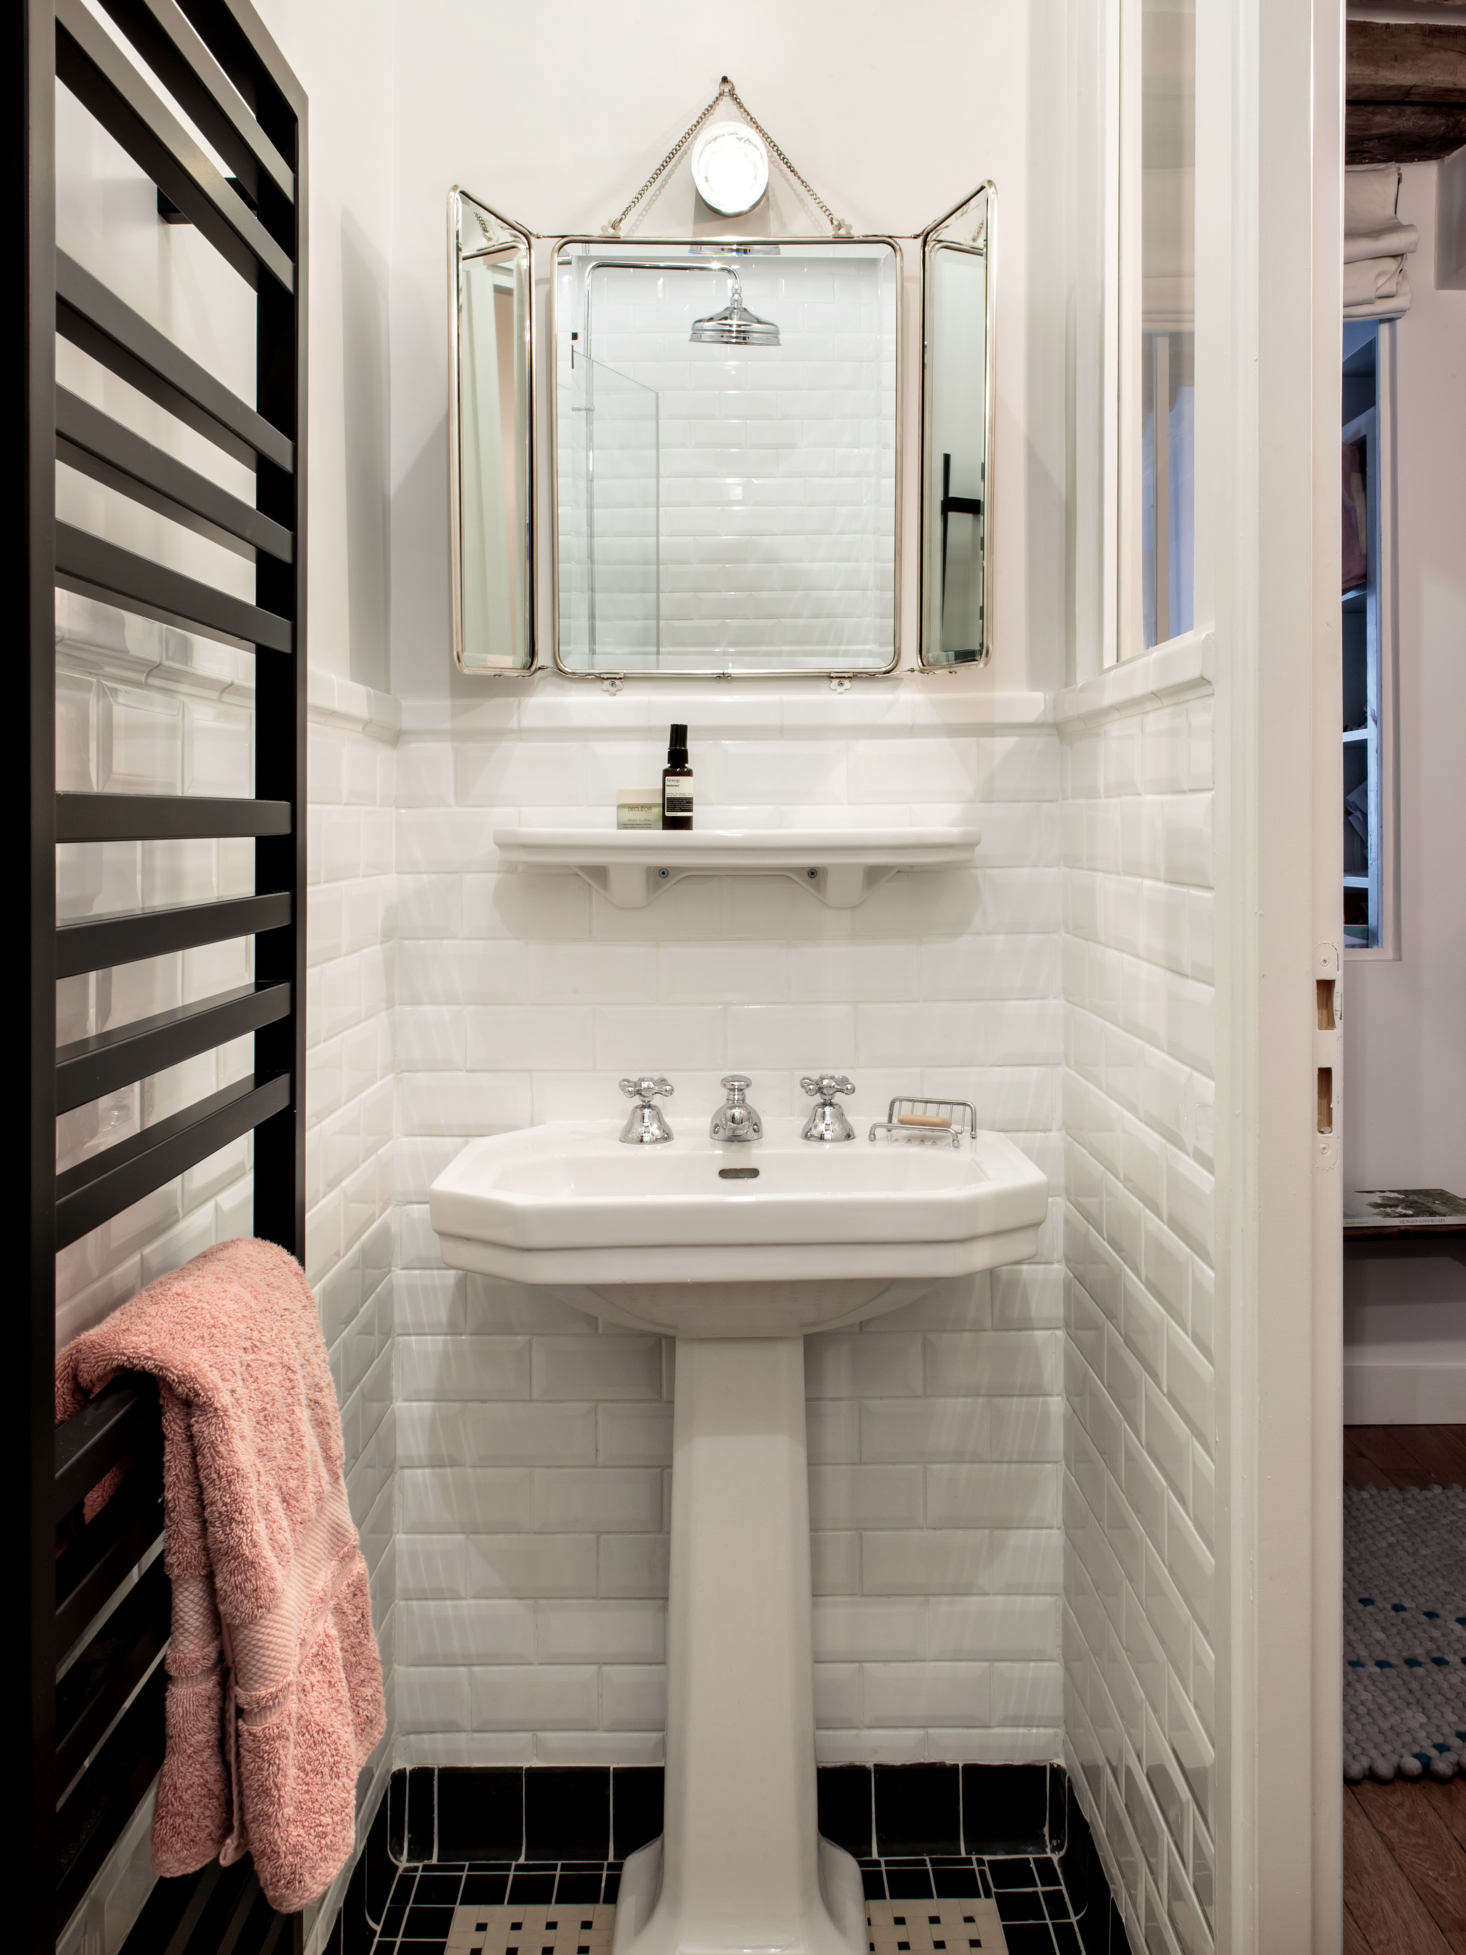 The space formerly occupied by the kitchen was converted into a second metro-tiled bathroom, this one with a towel warmer and shower. To see the apartment in its previous incarnation, go to The Socialite Family.